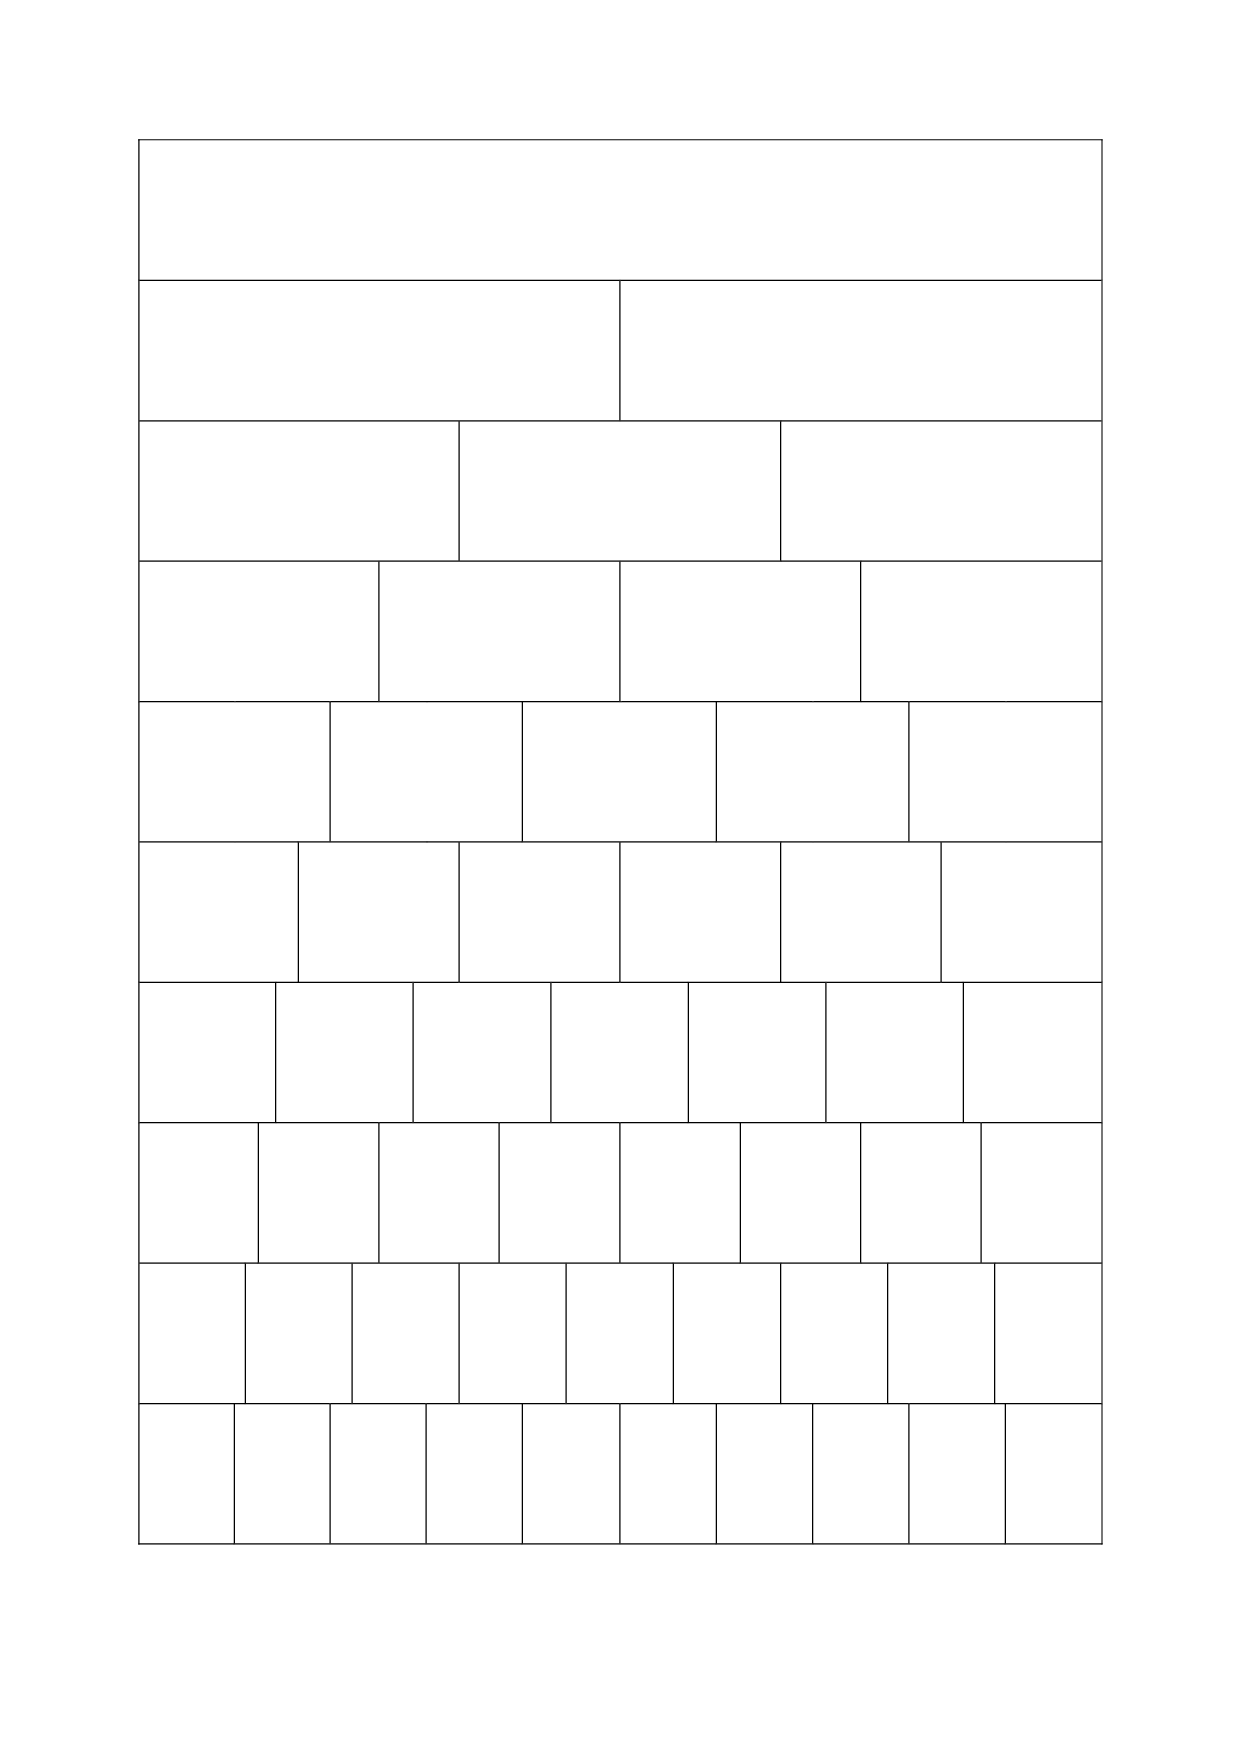 Fraction wall worksheet intro to fractions using lego by for Word wall template printable